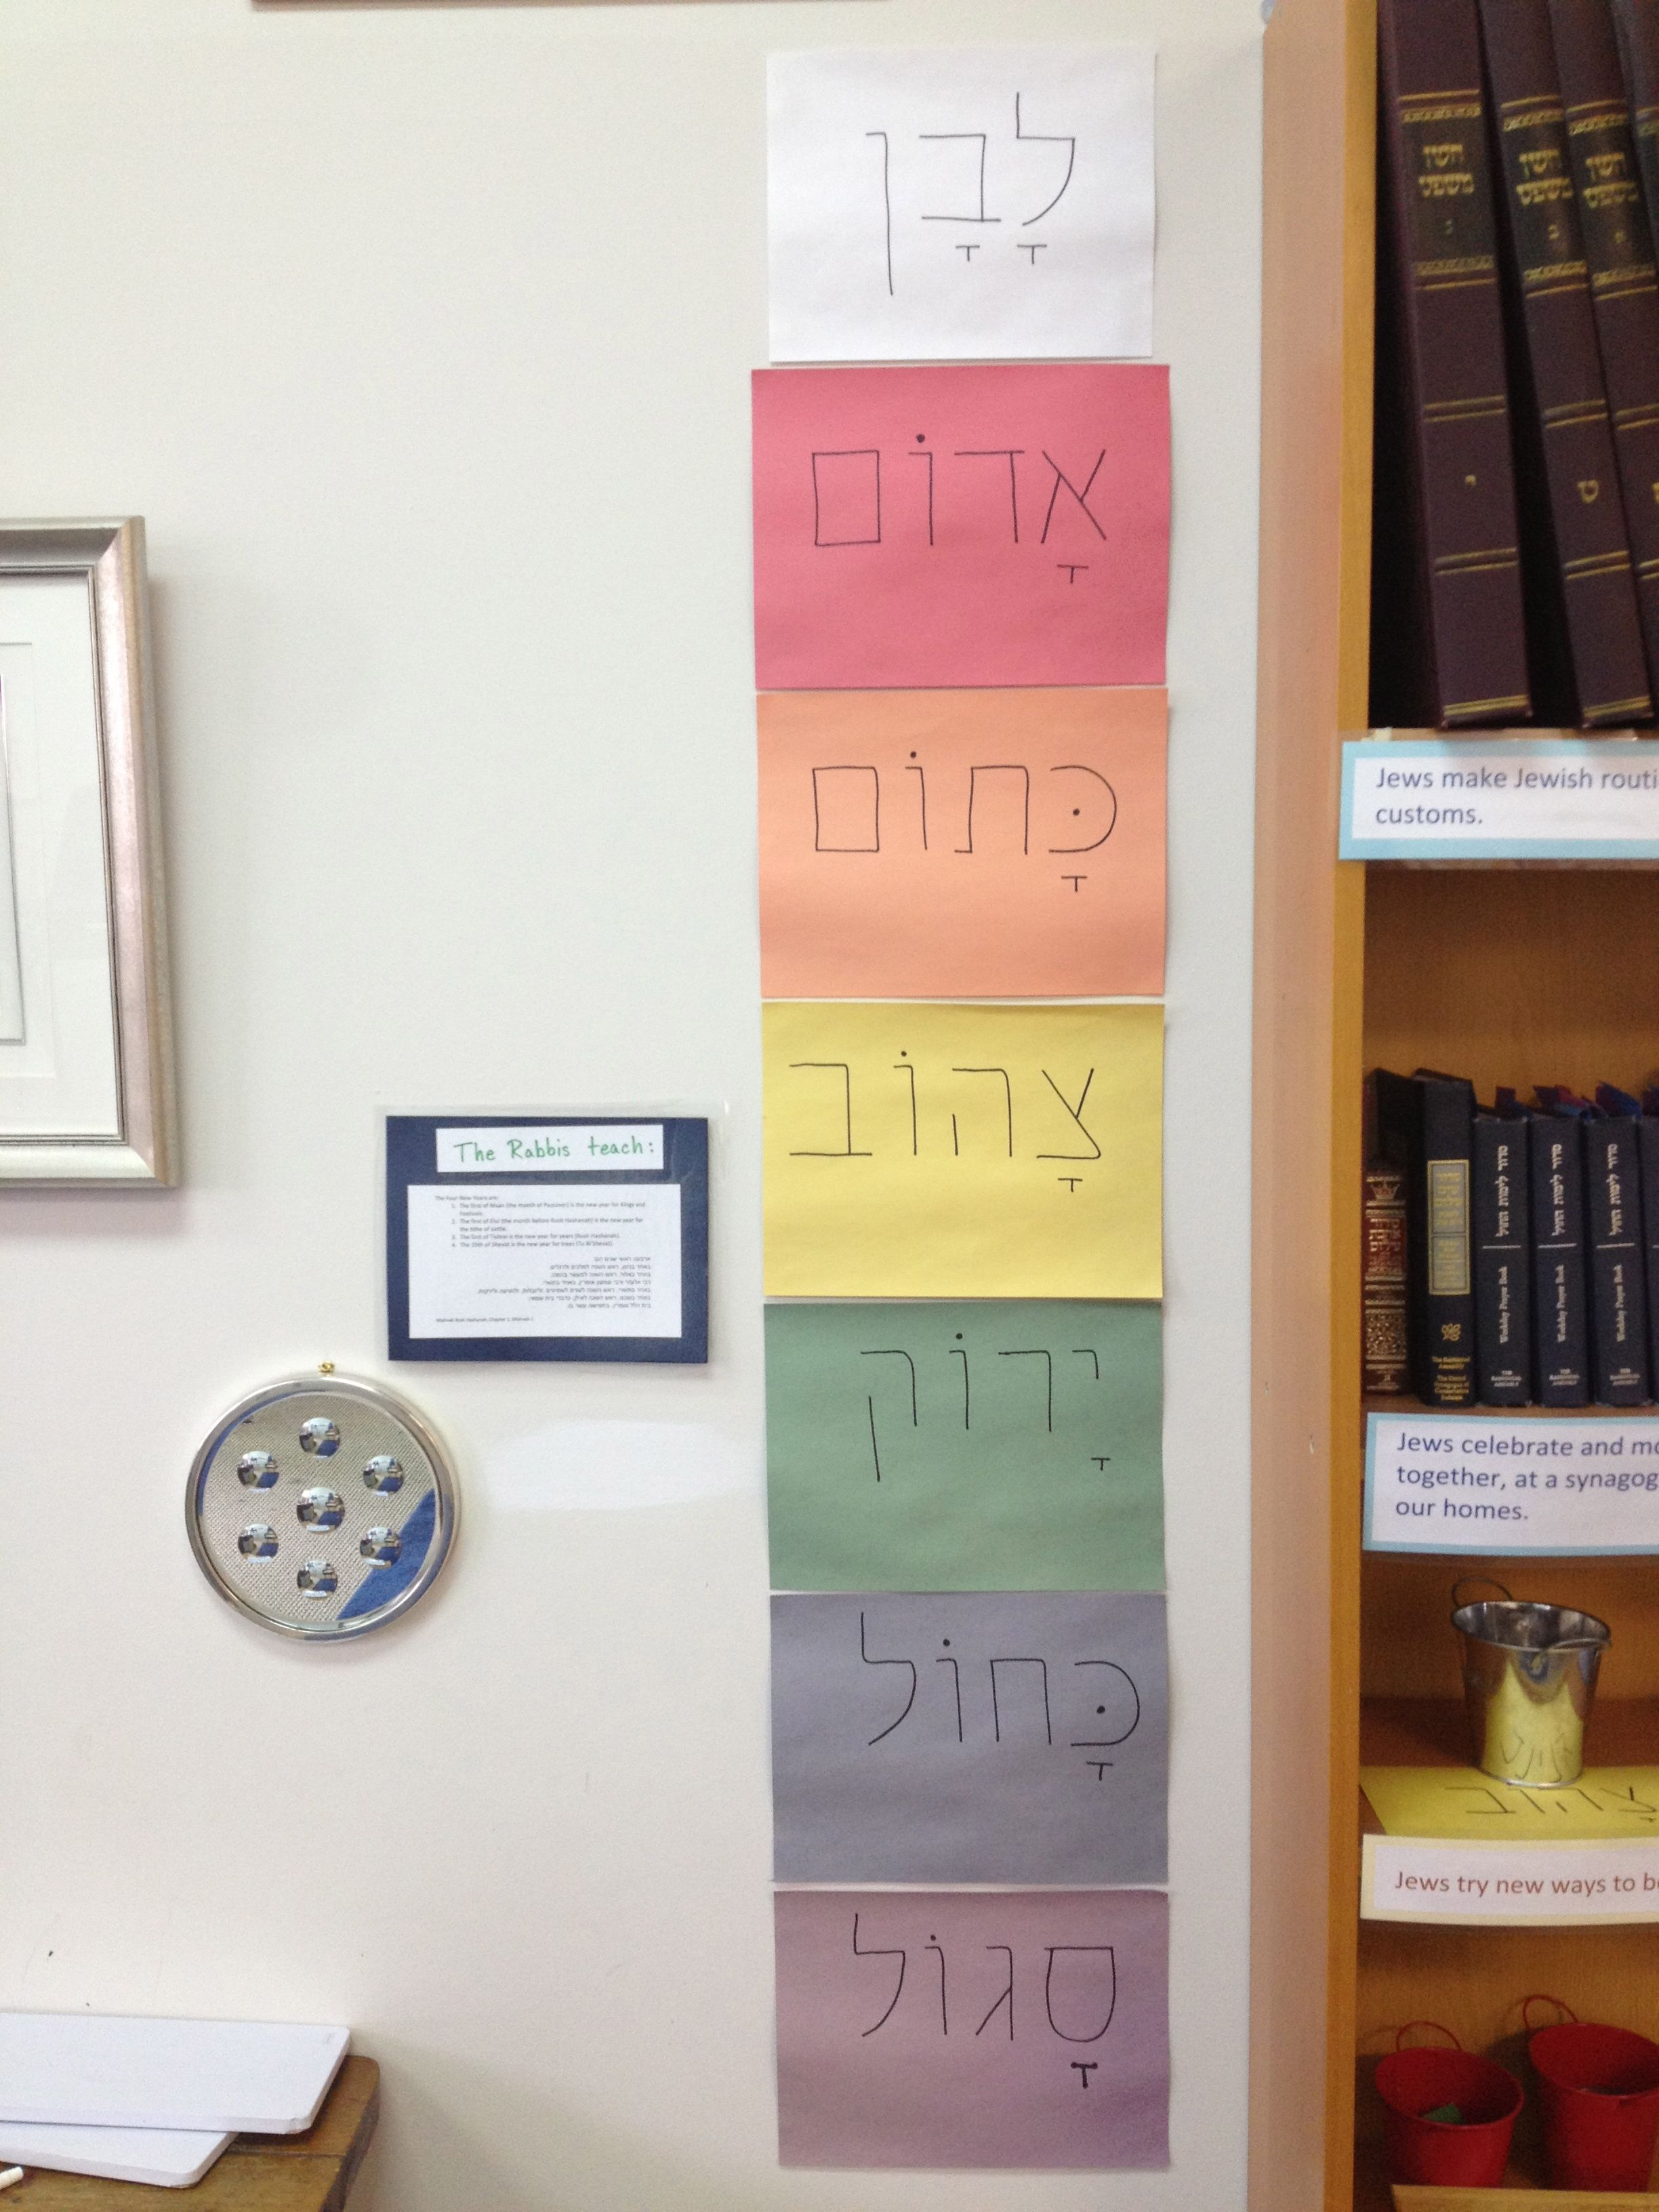 Hebrew Vocabulary Posted Around The Room In Self Guided